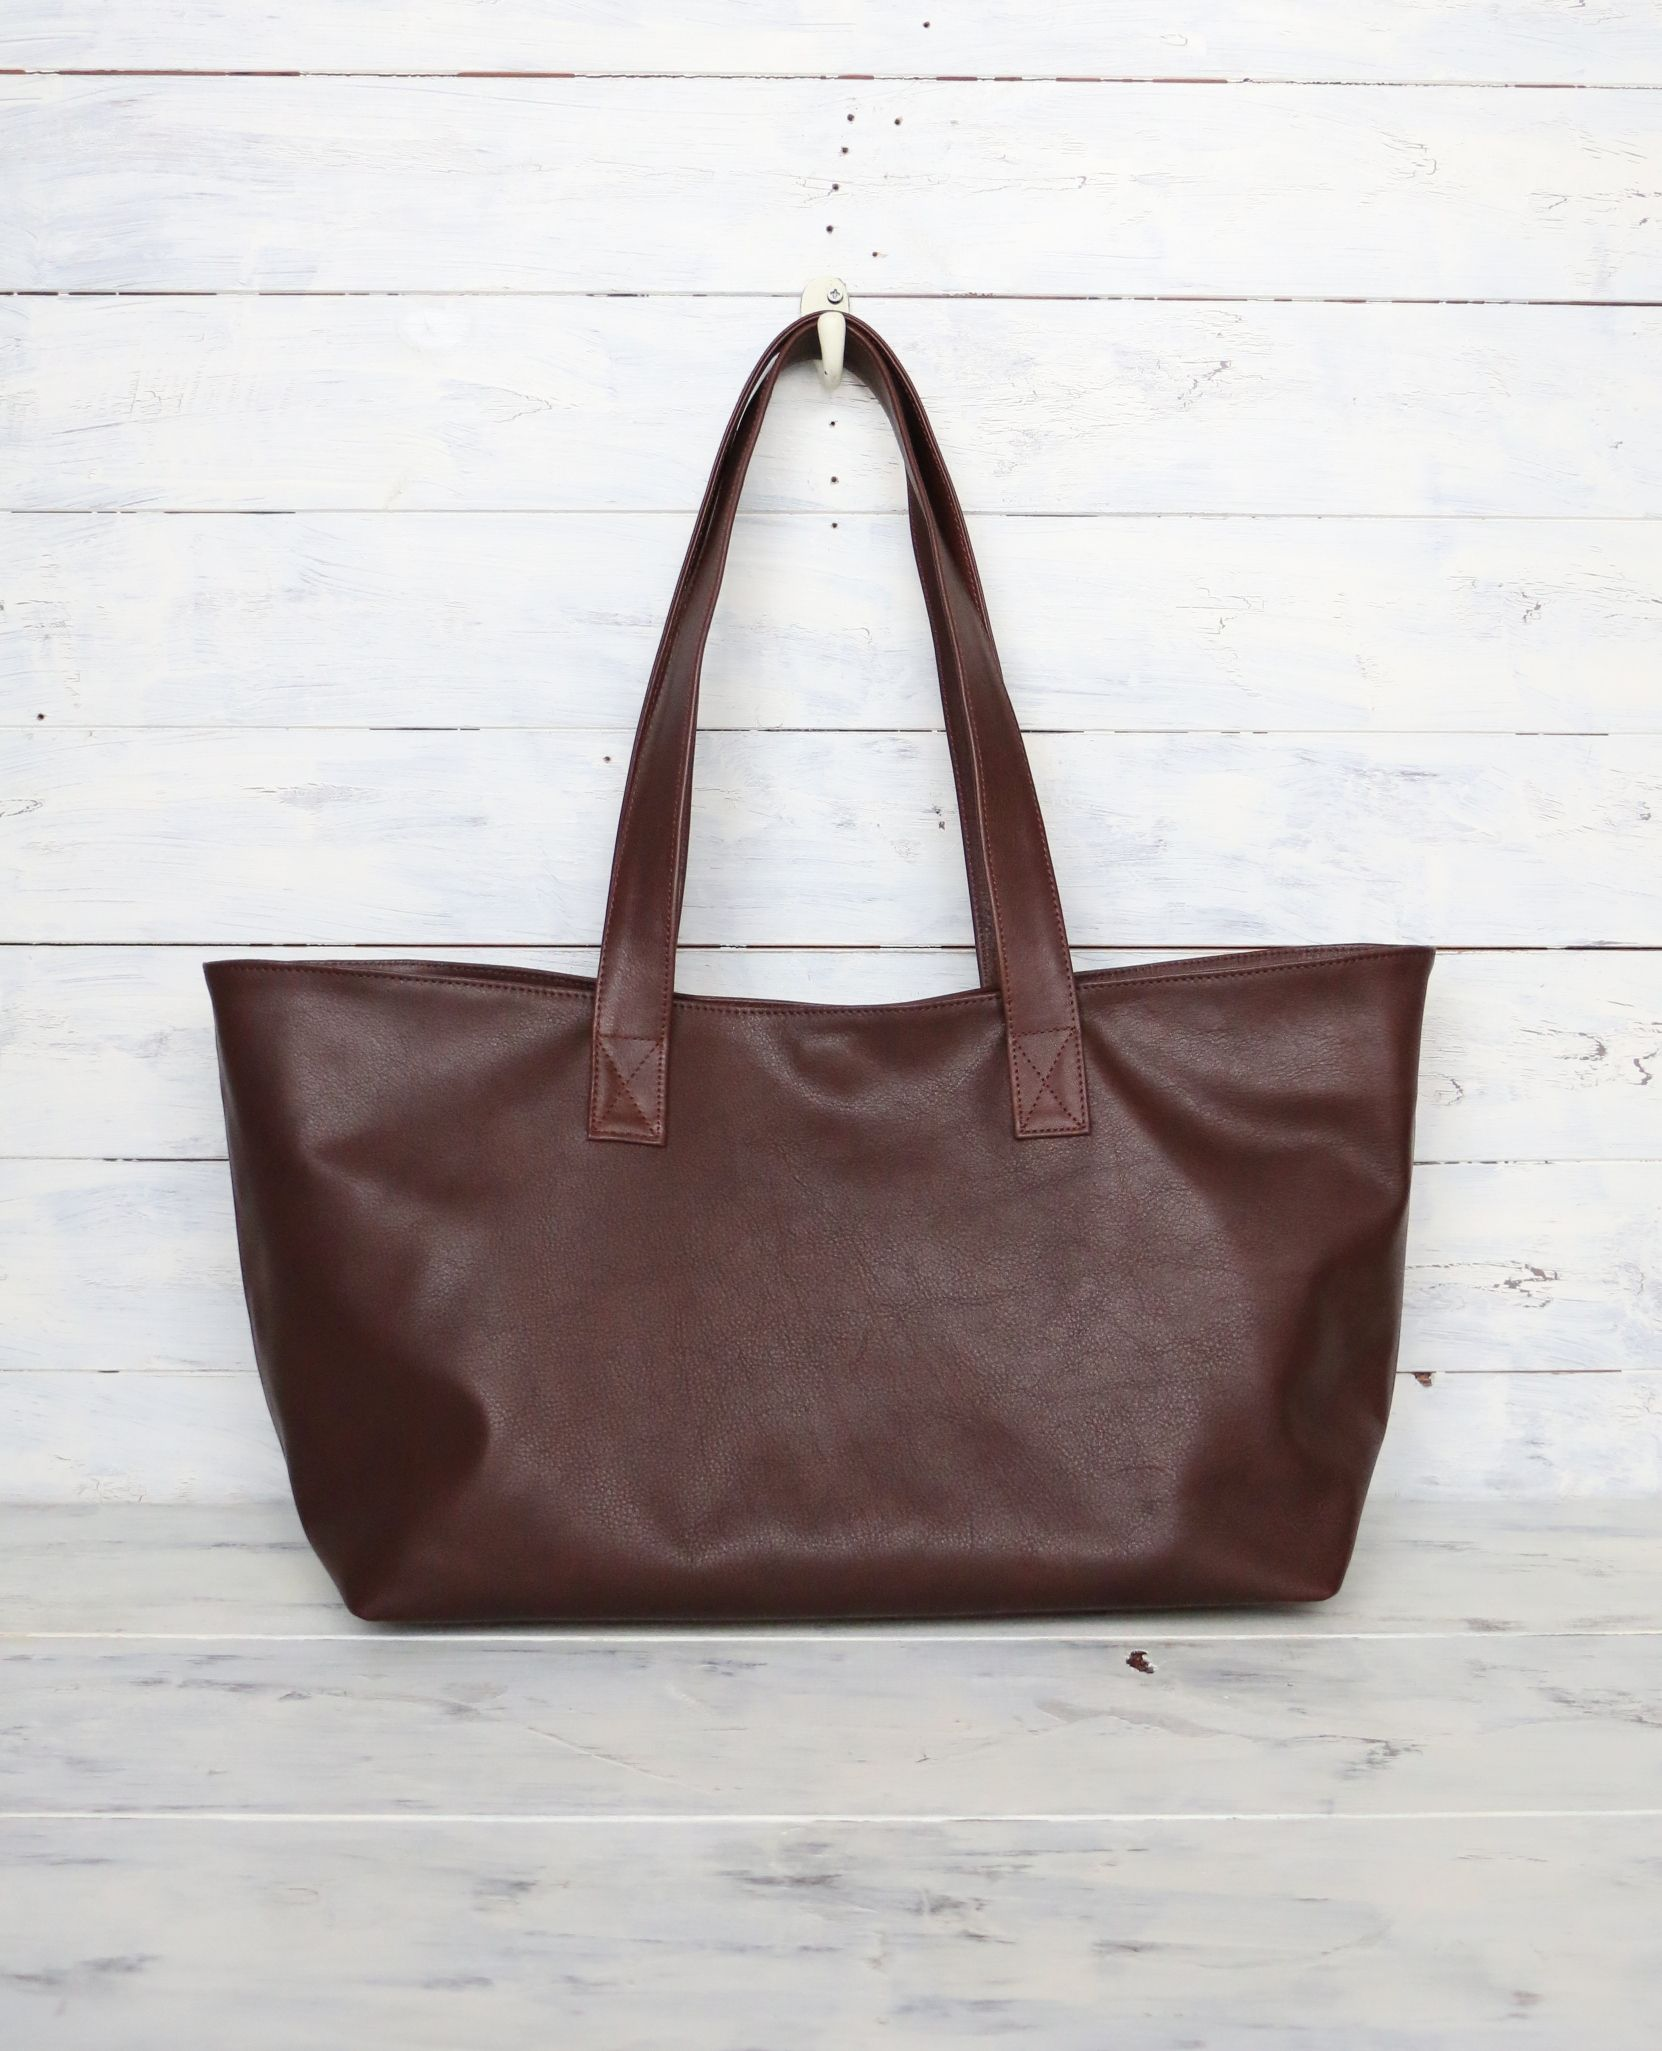 9394faa711d Chocolate-brown Leather tote bag - Unique, One of a kind , My ...